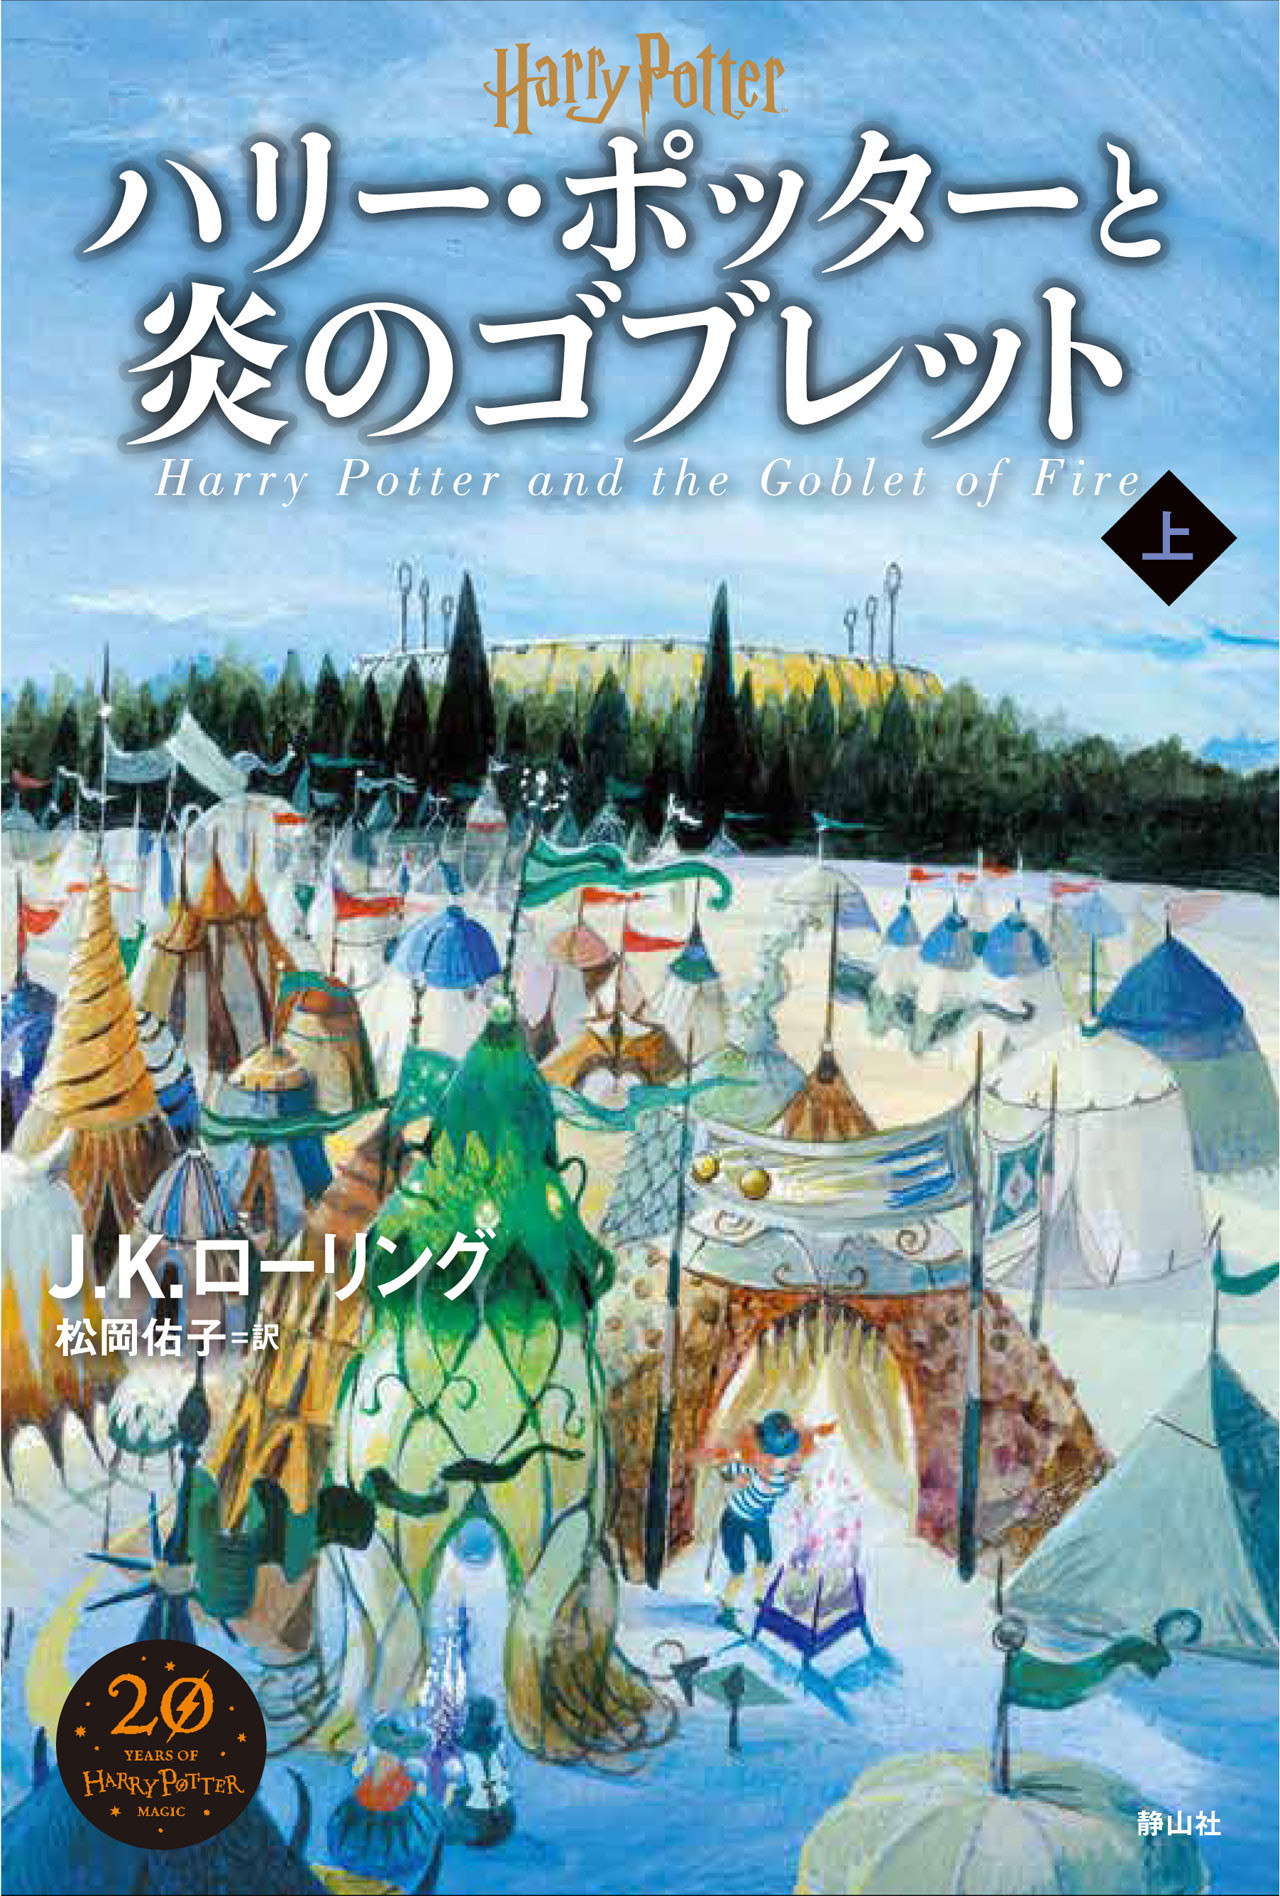 'Goblet of Fire' Japanese 20th anniversary edition (volume 1)